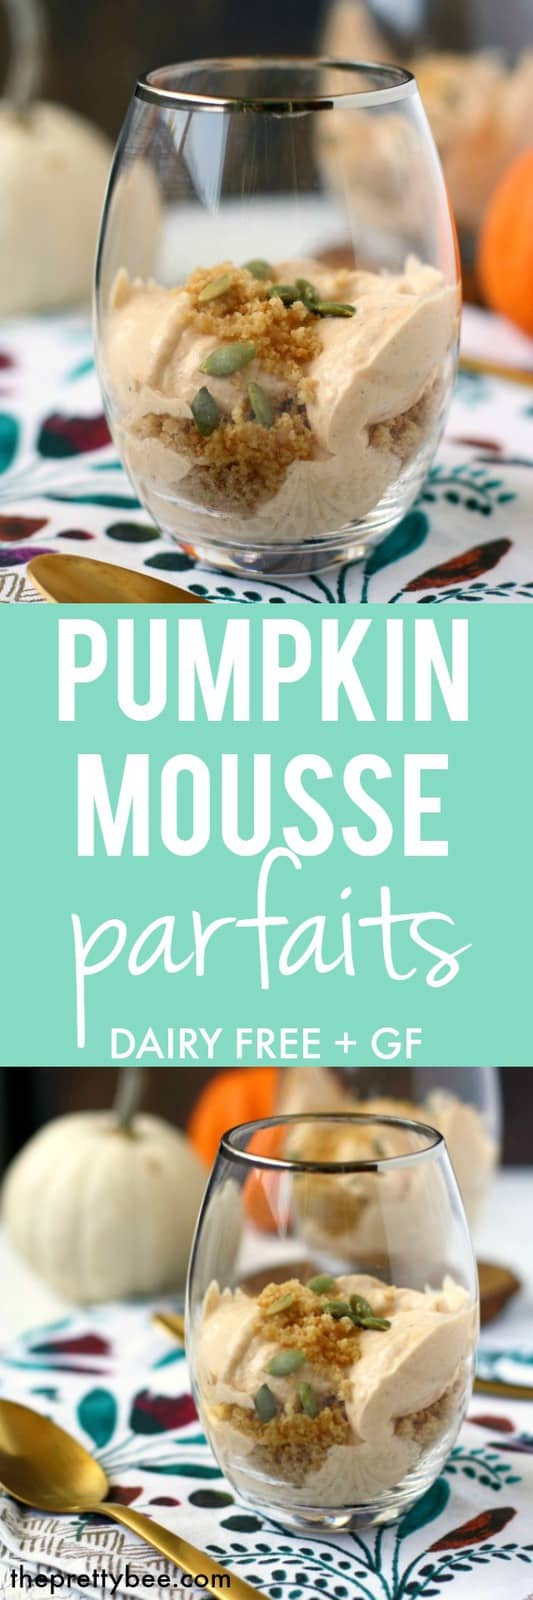 Light, fluffy, dairy free pumpkin mousse parfaits are a wonderful dessert for the holiday season!